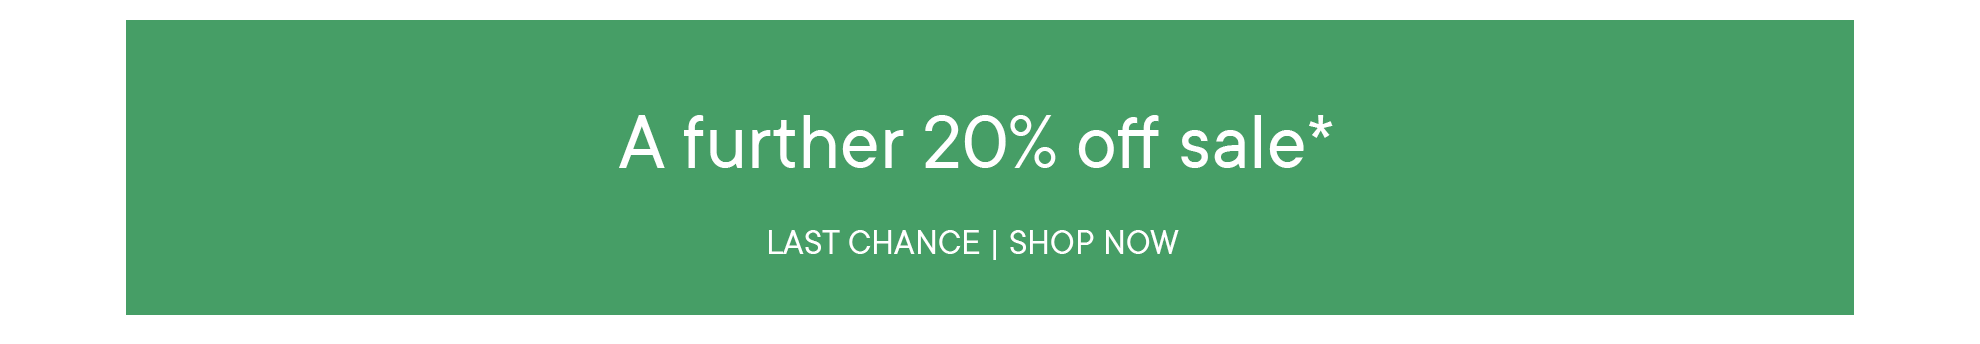 a further 20% off sale*